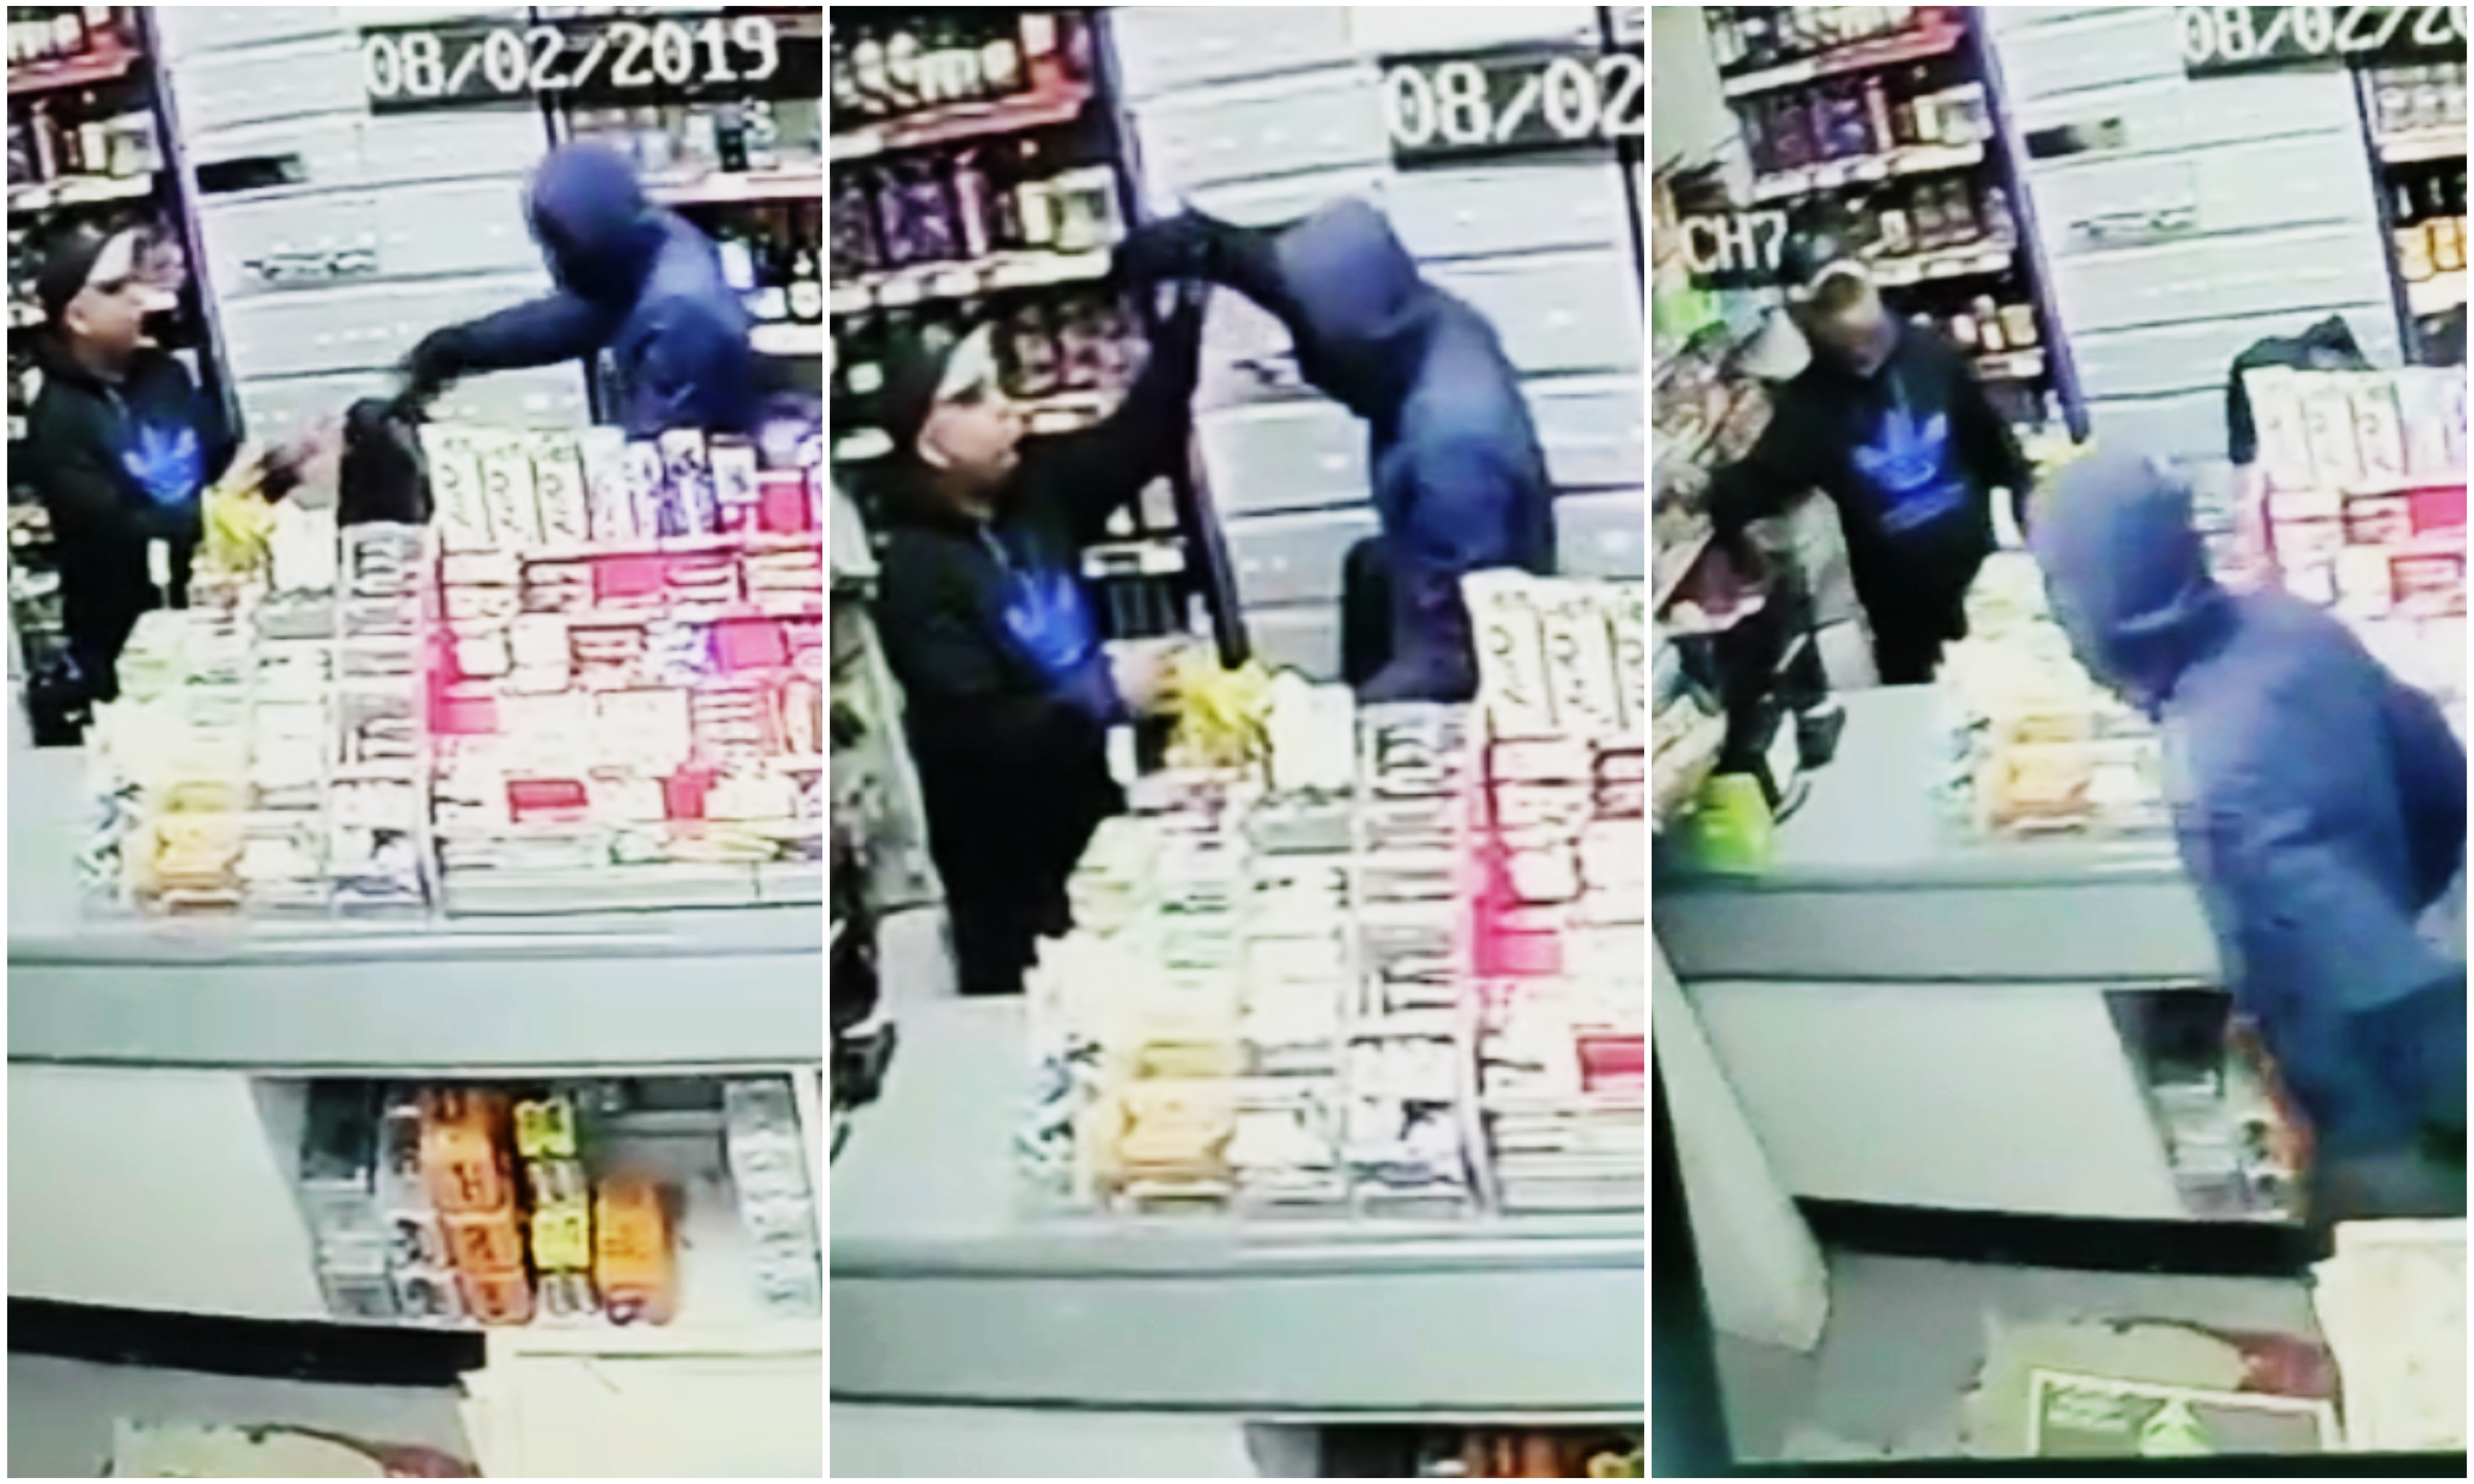 The robber threatens the shopkeeper and demands items before fleeing the shop.